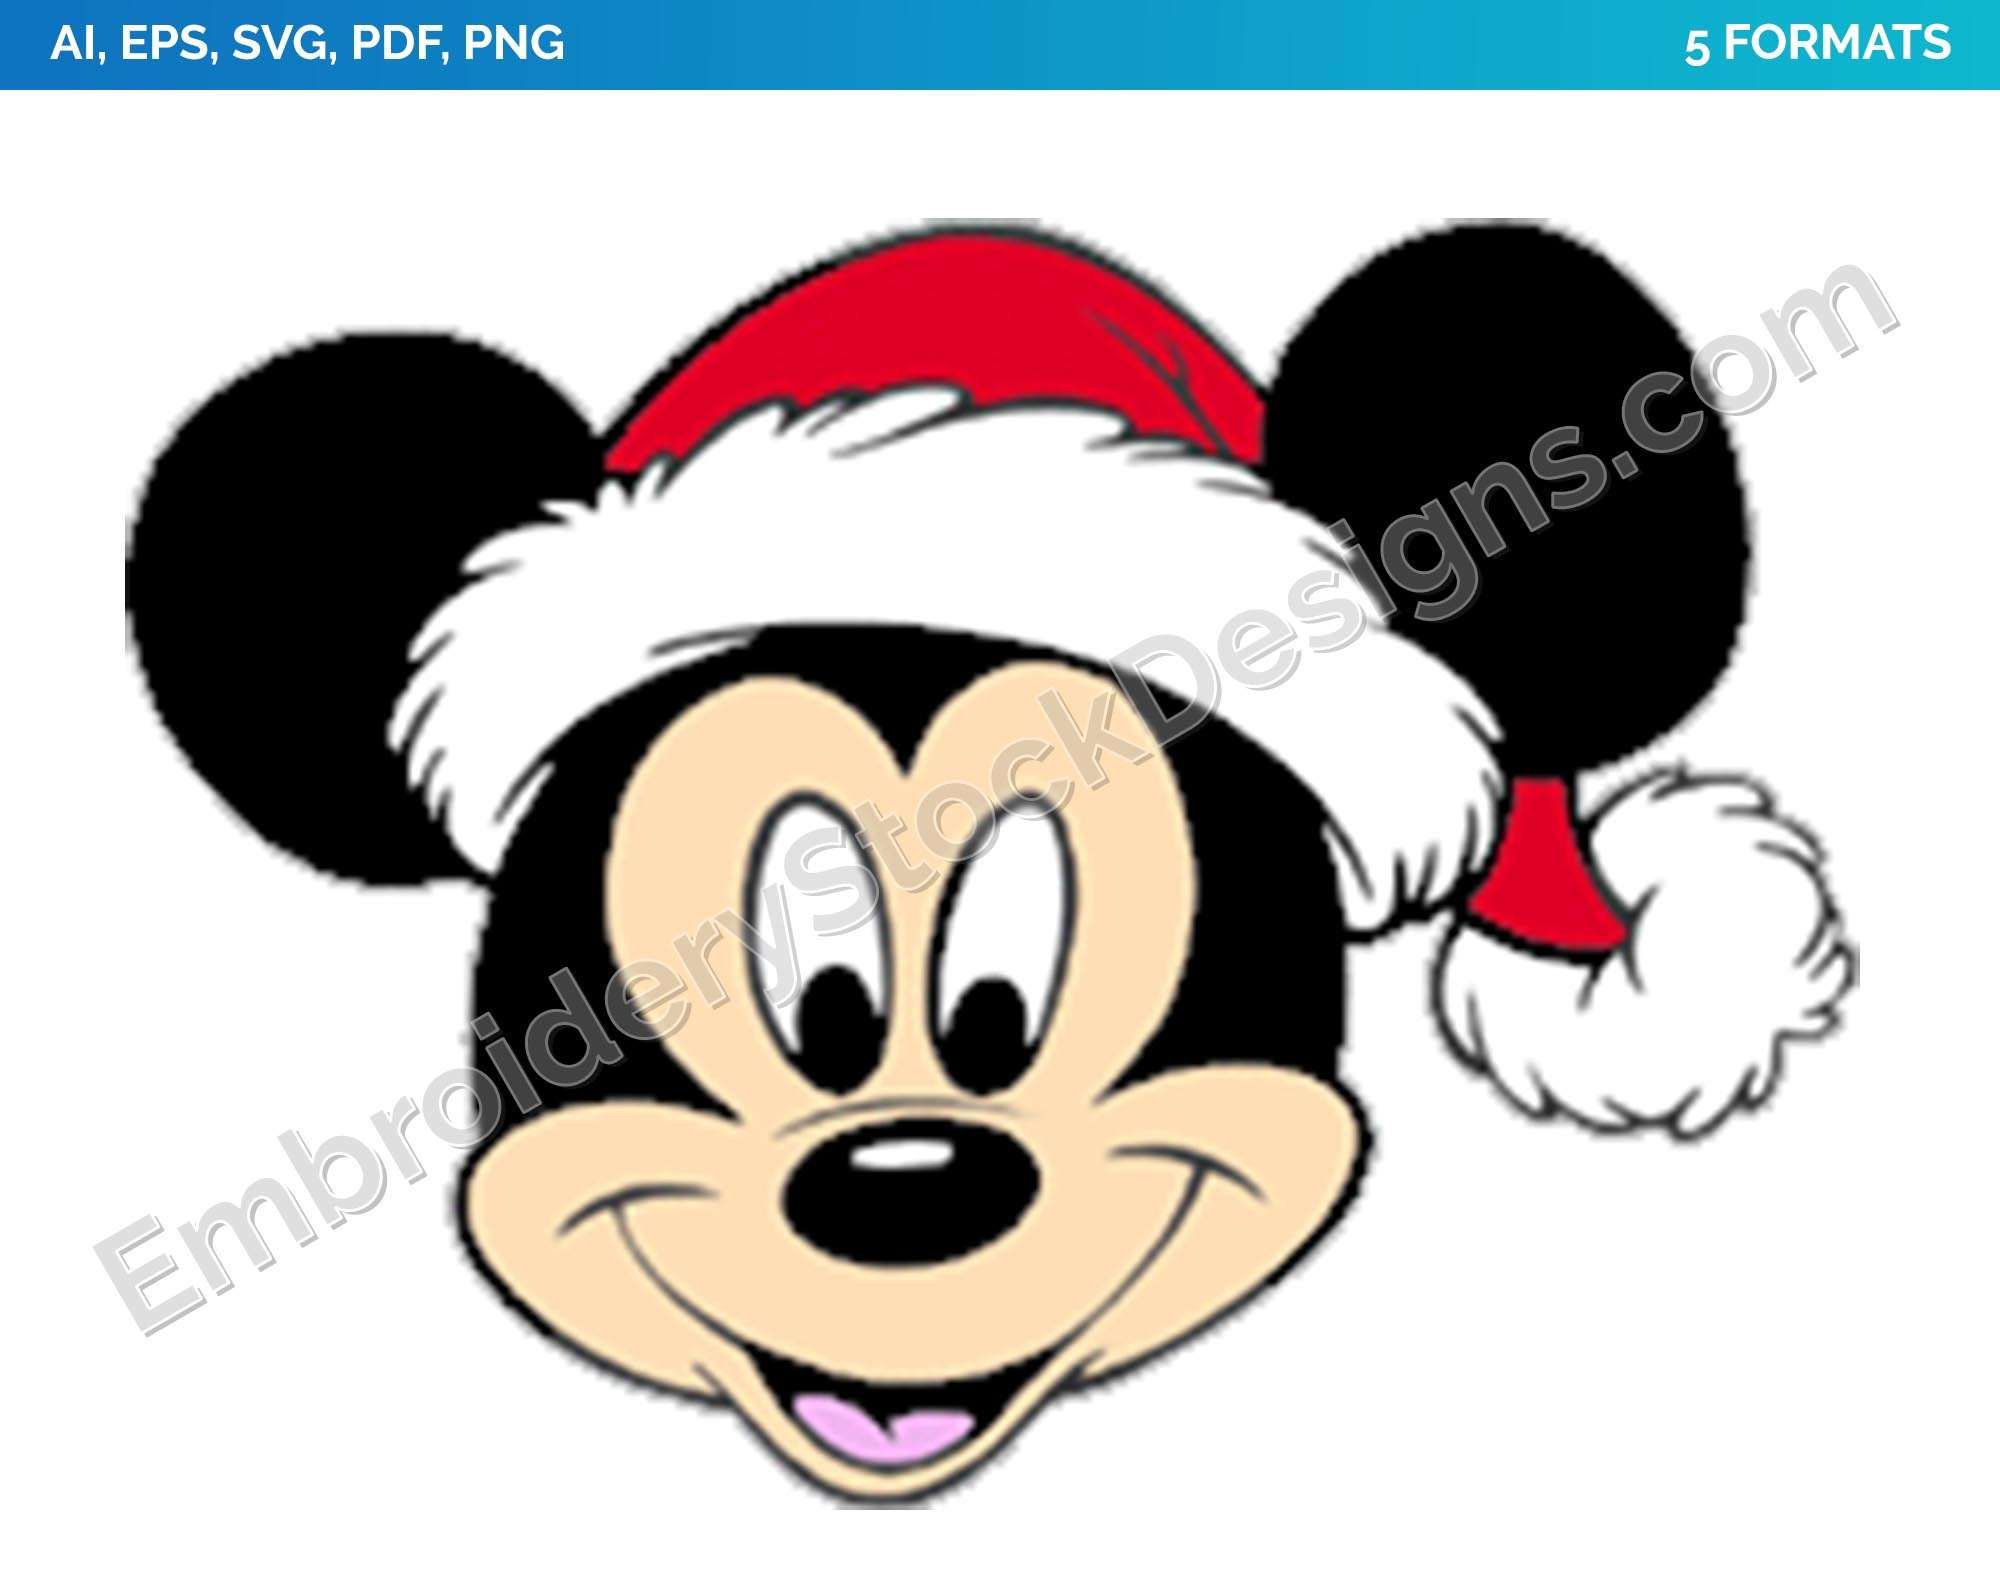 Mickey Mouse Wearing Santa Hat - Mickey Mouse Christmas - Holiday Disney  Character Designs as SVG Vector for Print in 5 formats - DSNYH000579 •  World's largest …   Mickey mouse, Mickey mouse christmas, Character design